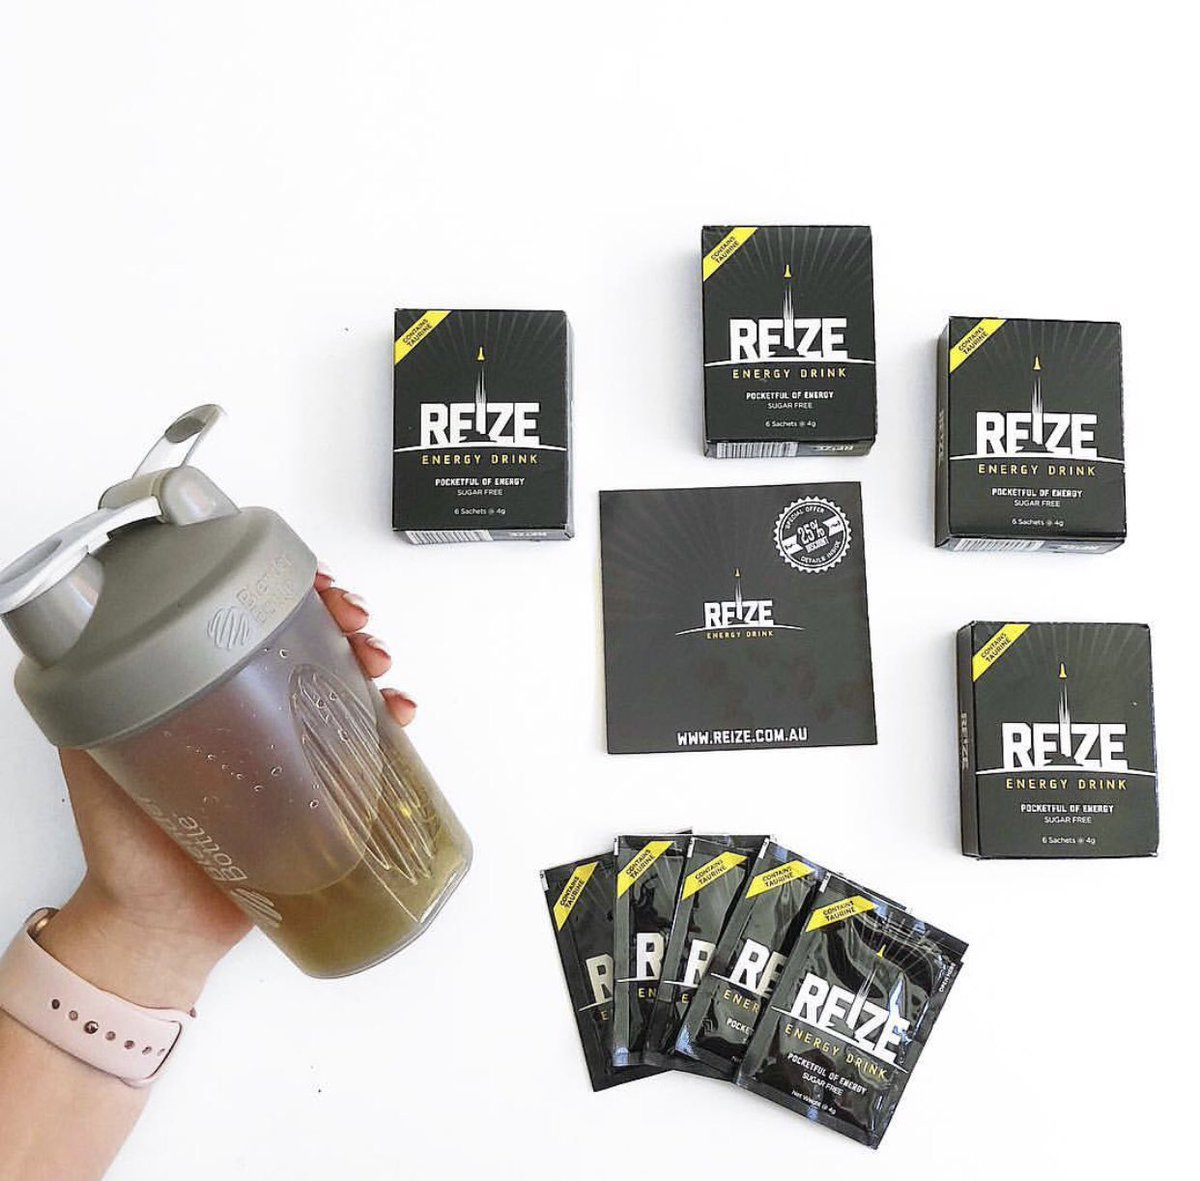 REIZE Energy Drink (@reizeenergy) | Twitter